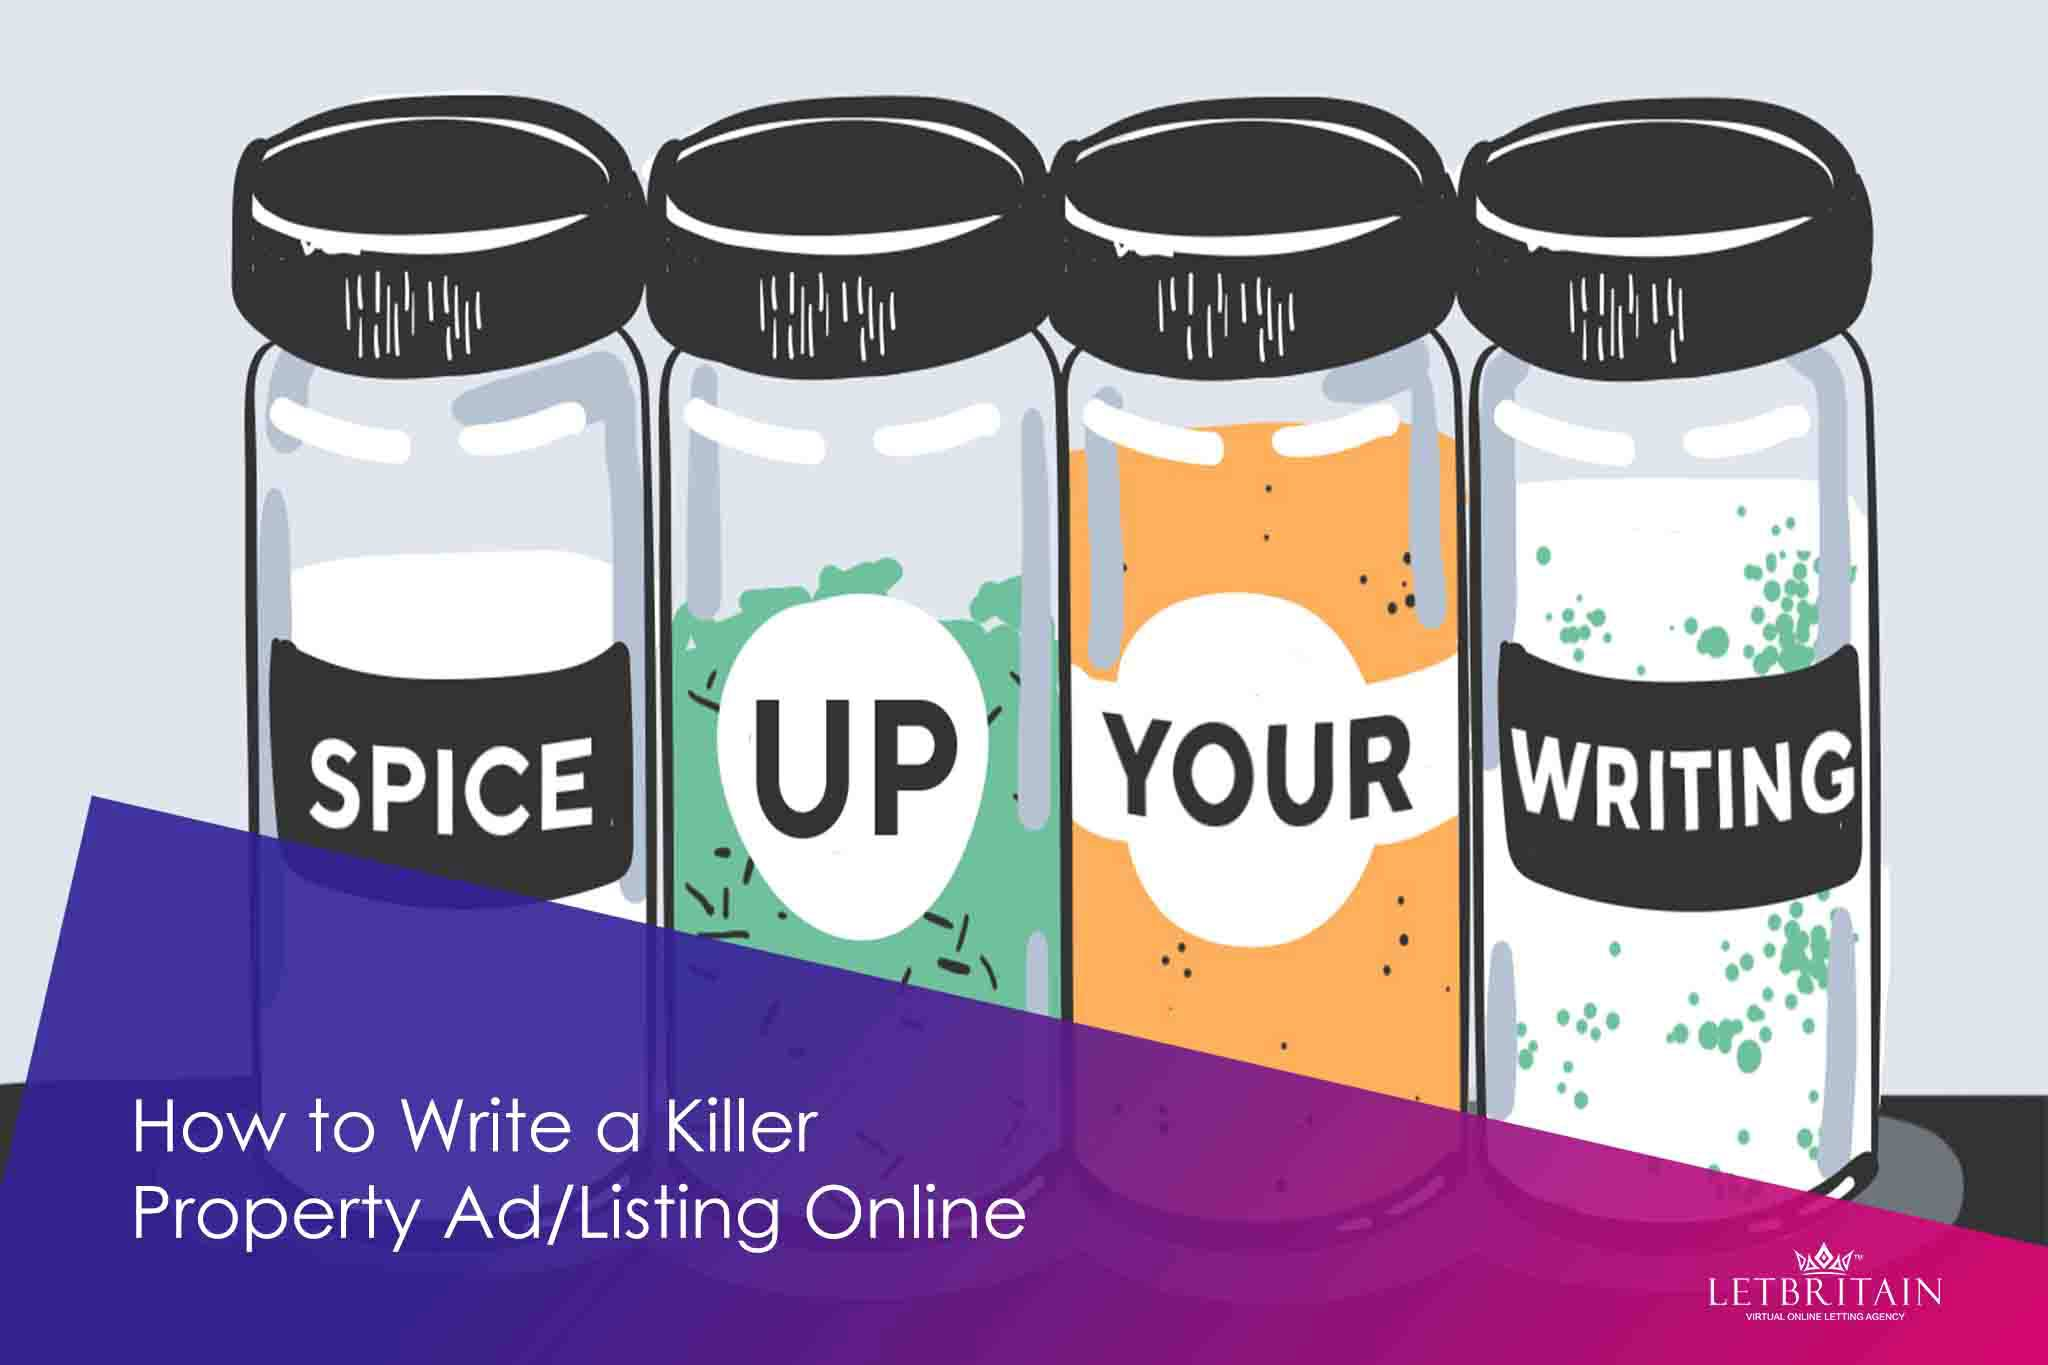 How To Write A Killer Property Ad